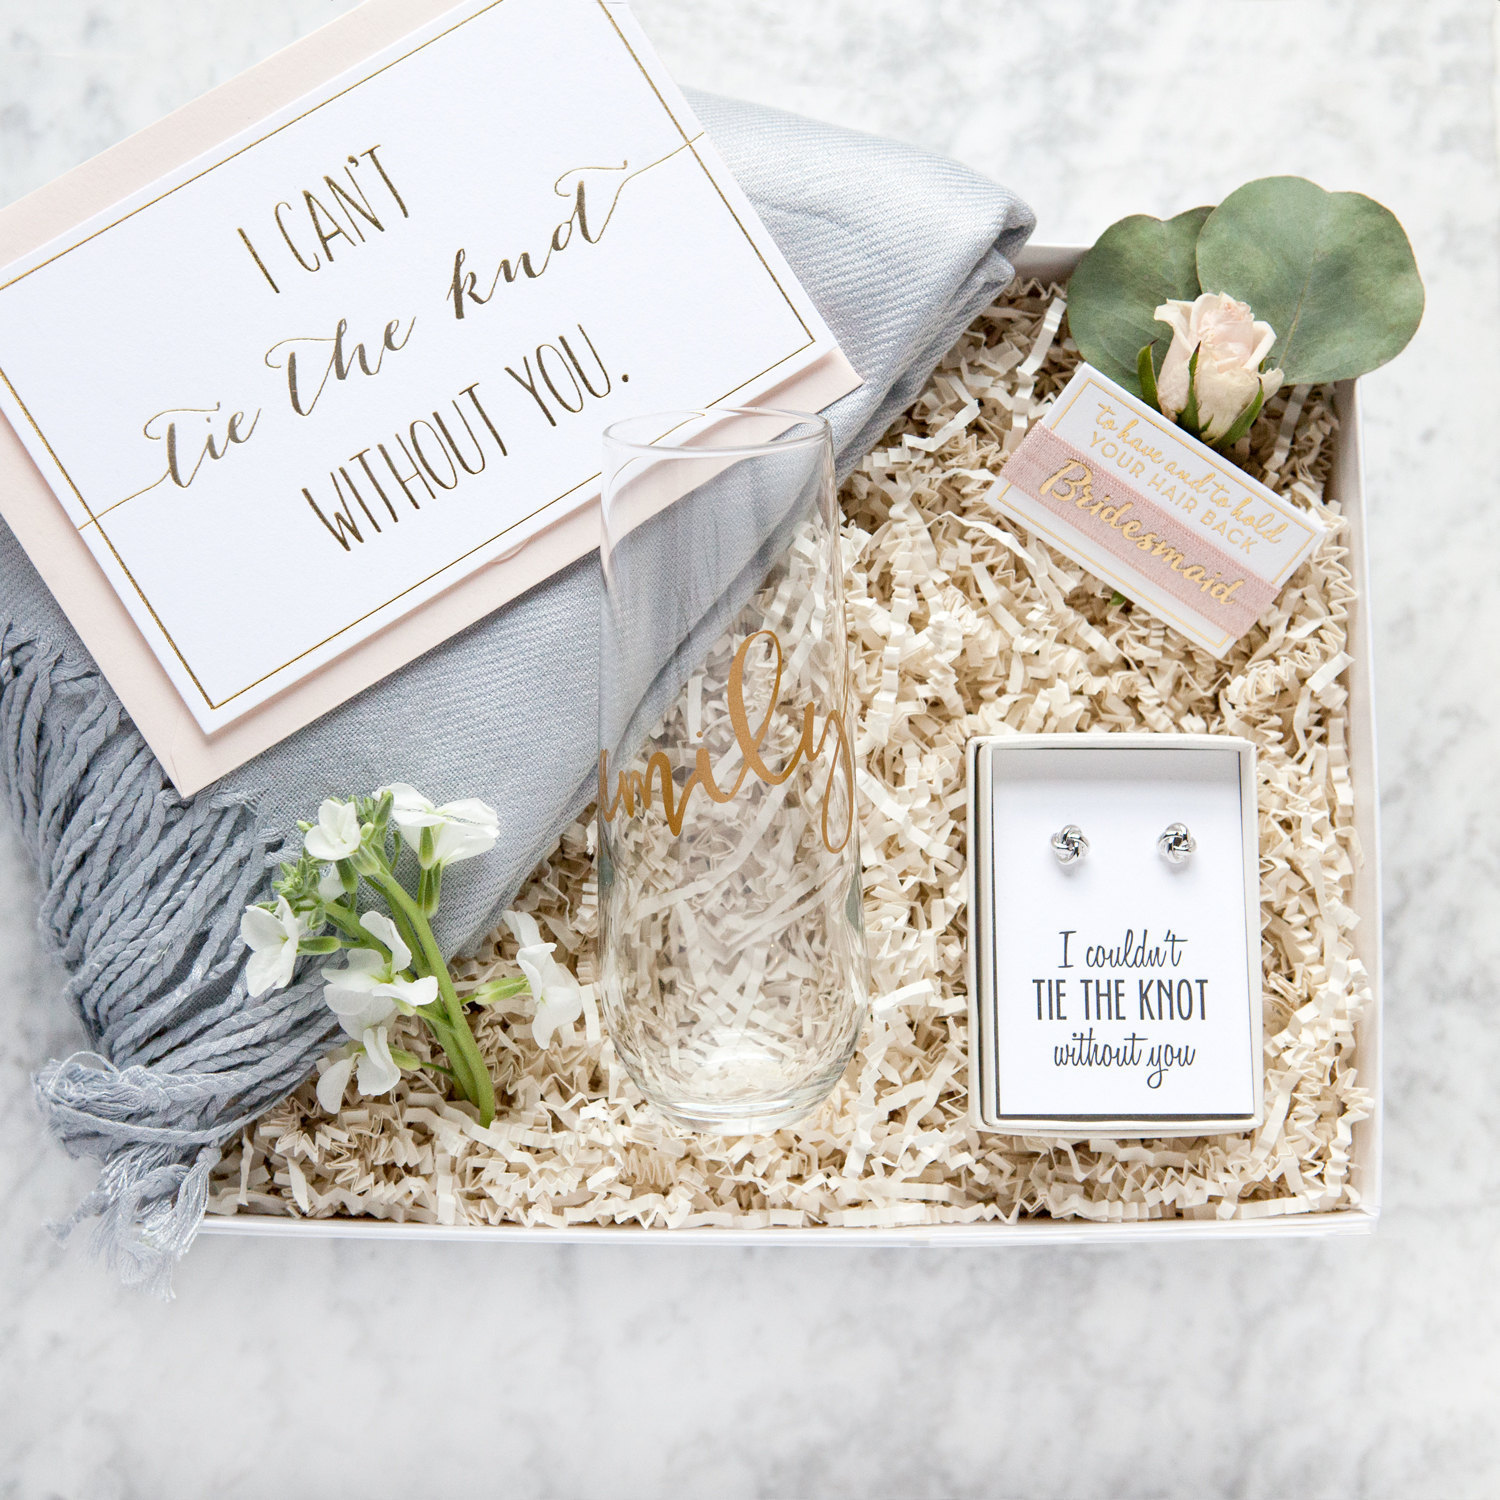 Bridesmaid Gifts From Bride: 20 Bridesmaid Proposal Ideas From Etsy